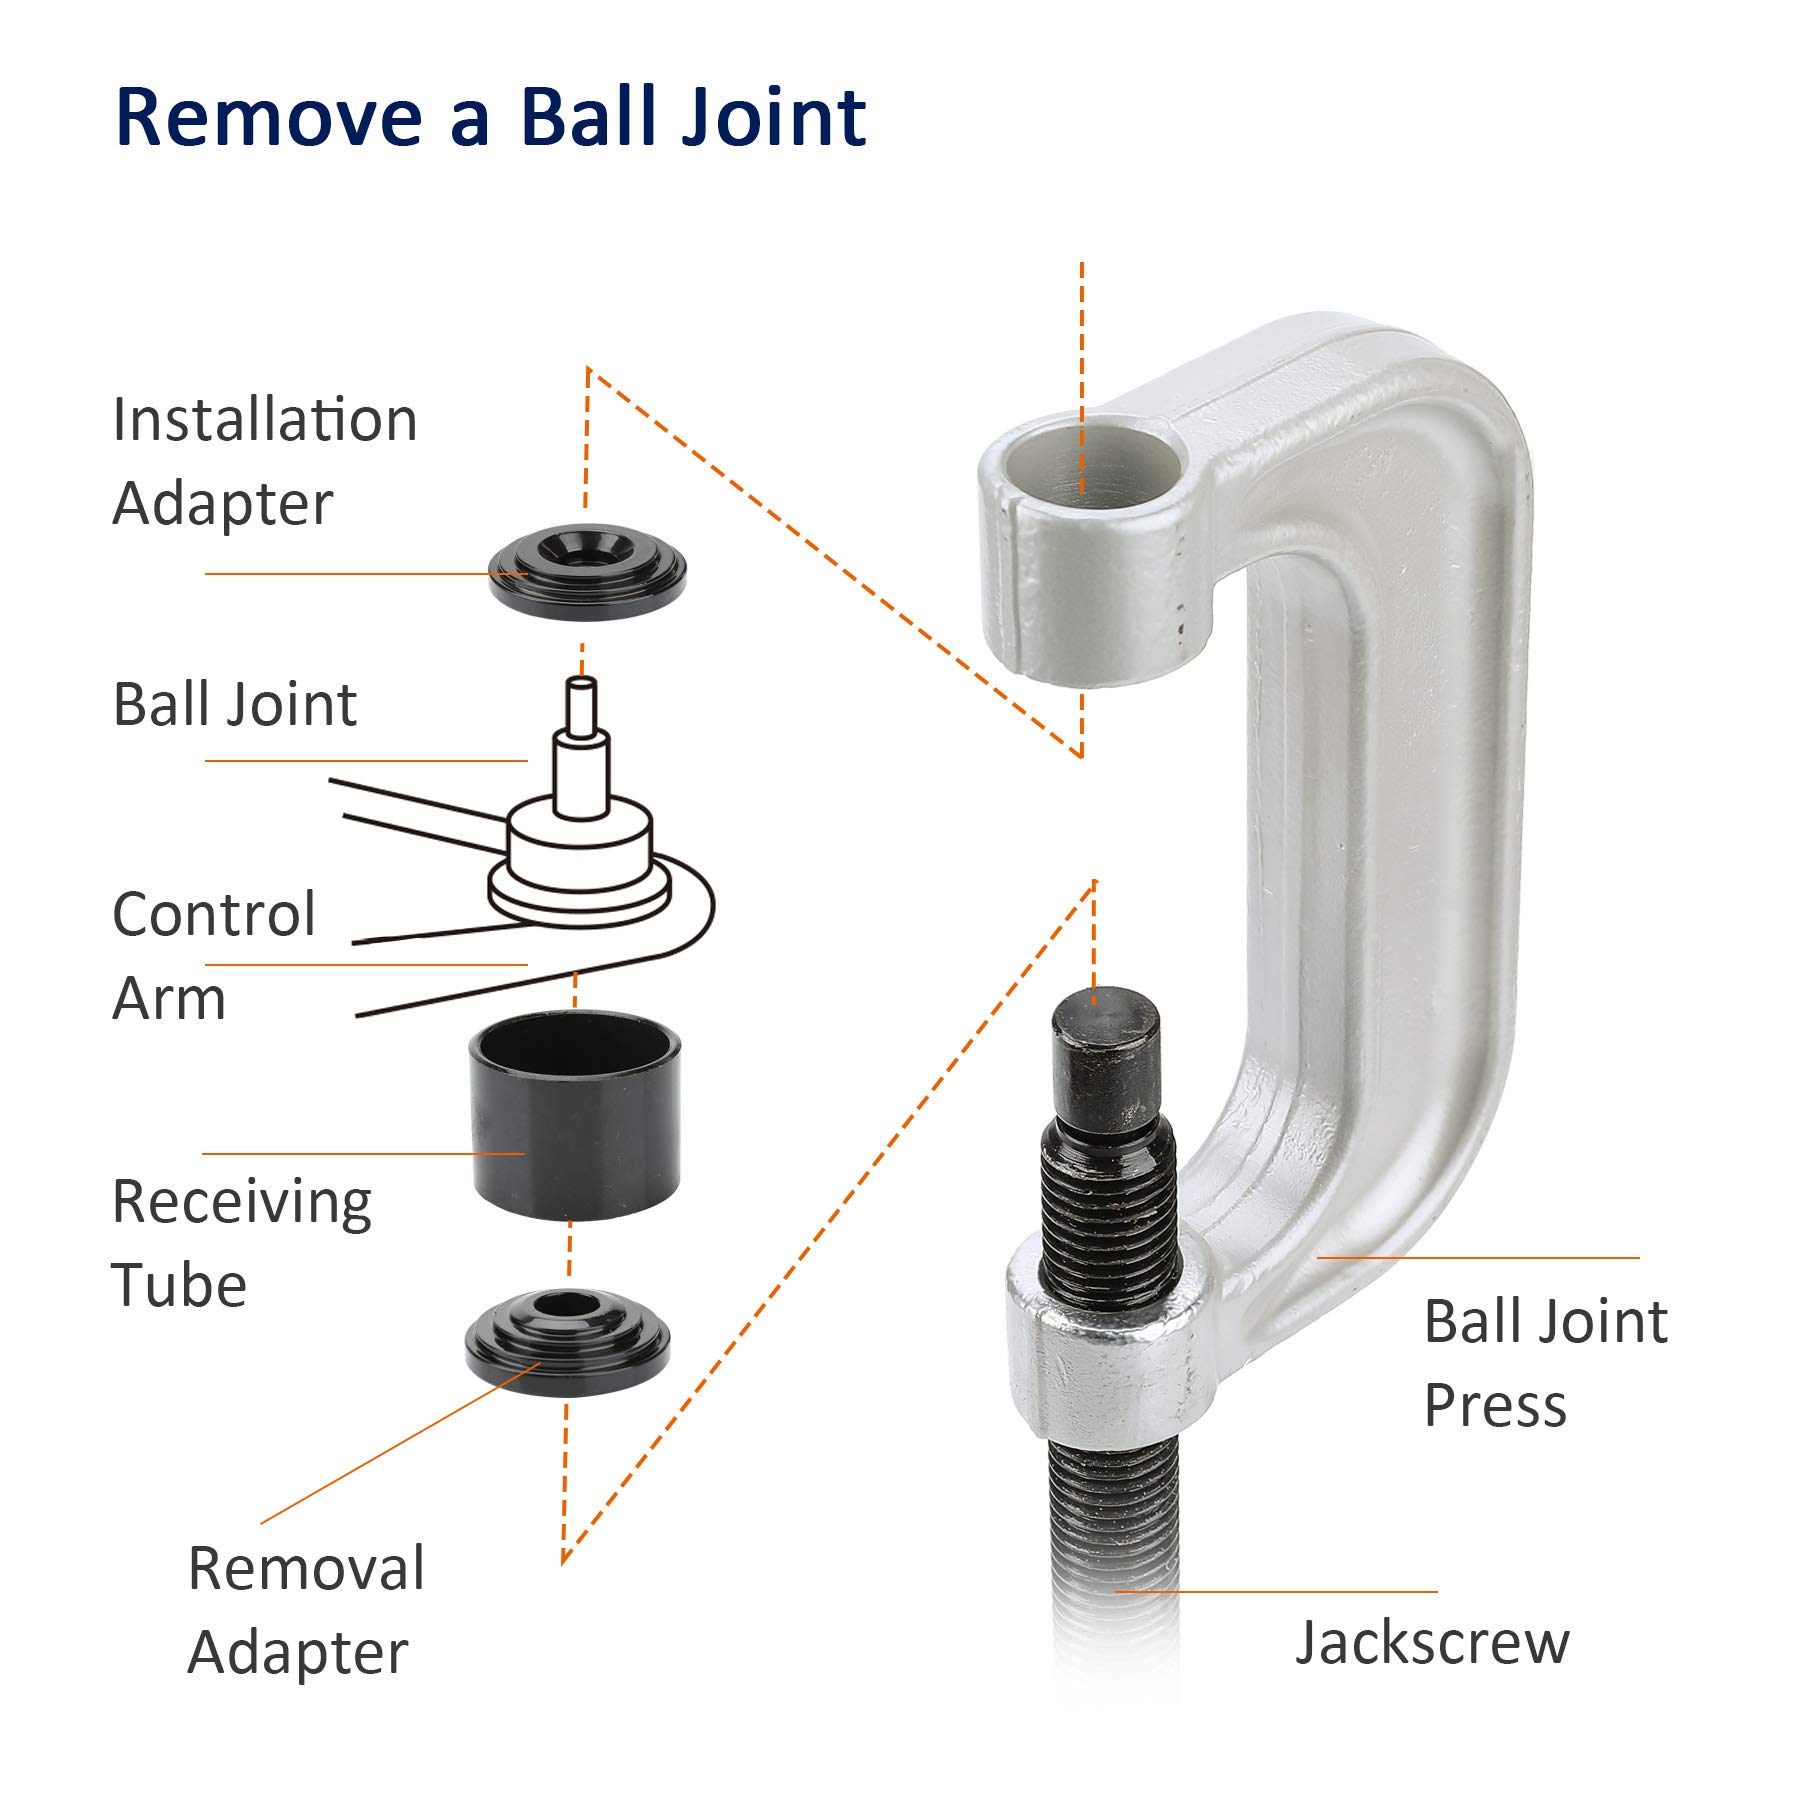 OrionMotorTech Heavy Duty Ball Joint Press & U Joint Removal Tool Kit with 4wd Adapters, for Most 2WD and 4WD Cars and Light Trucks (BK) by OrionMotorTech (Image #4)